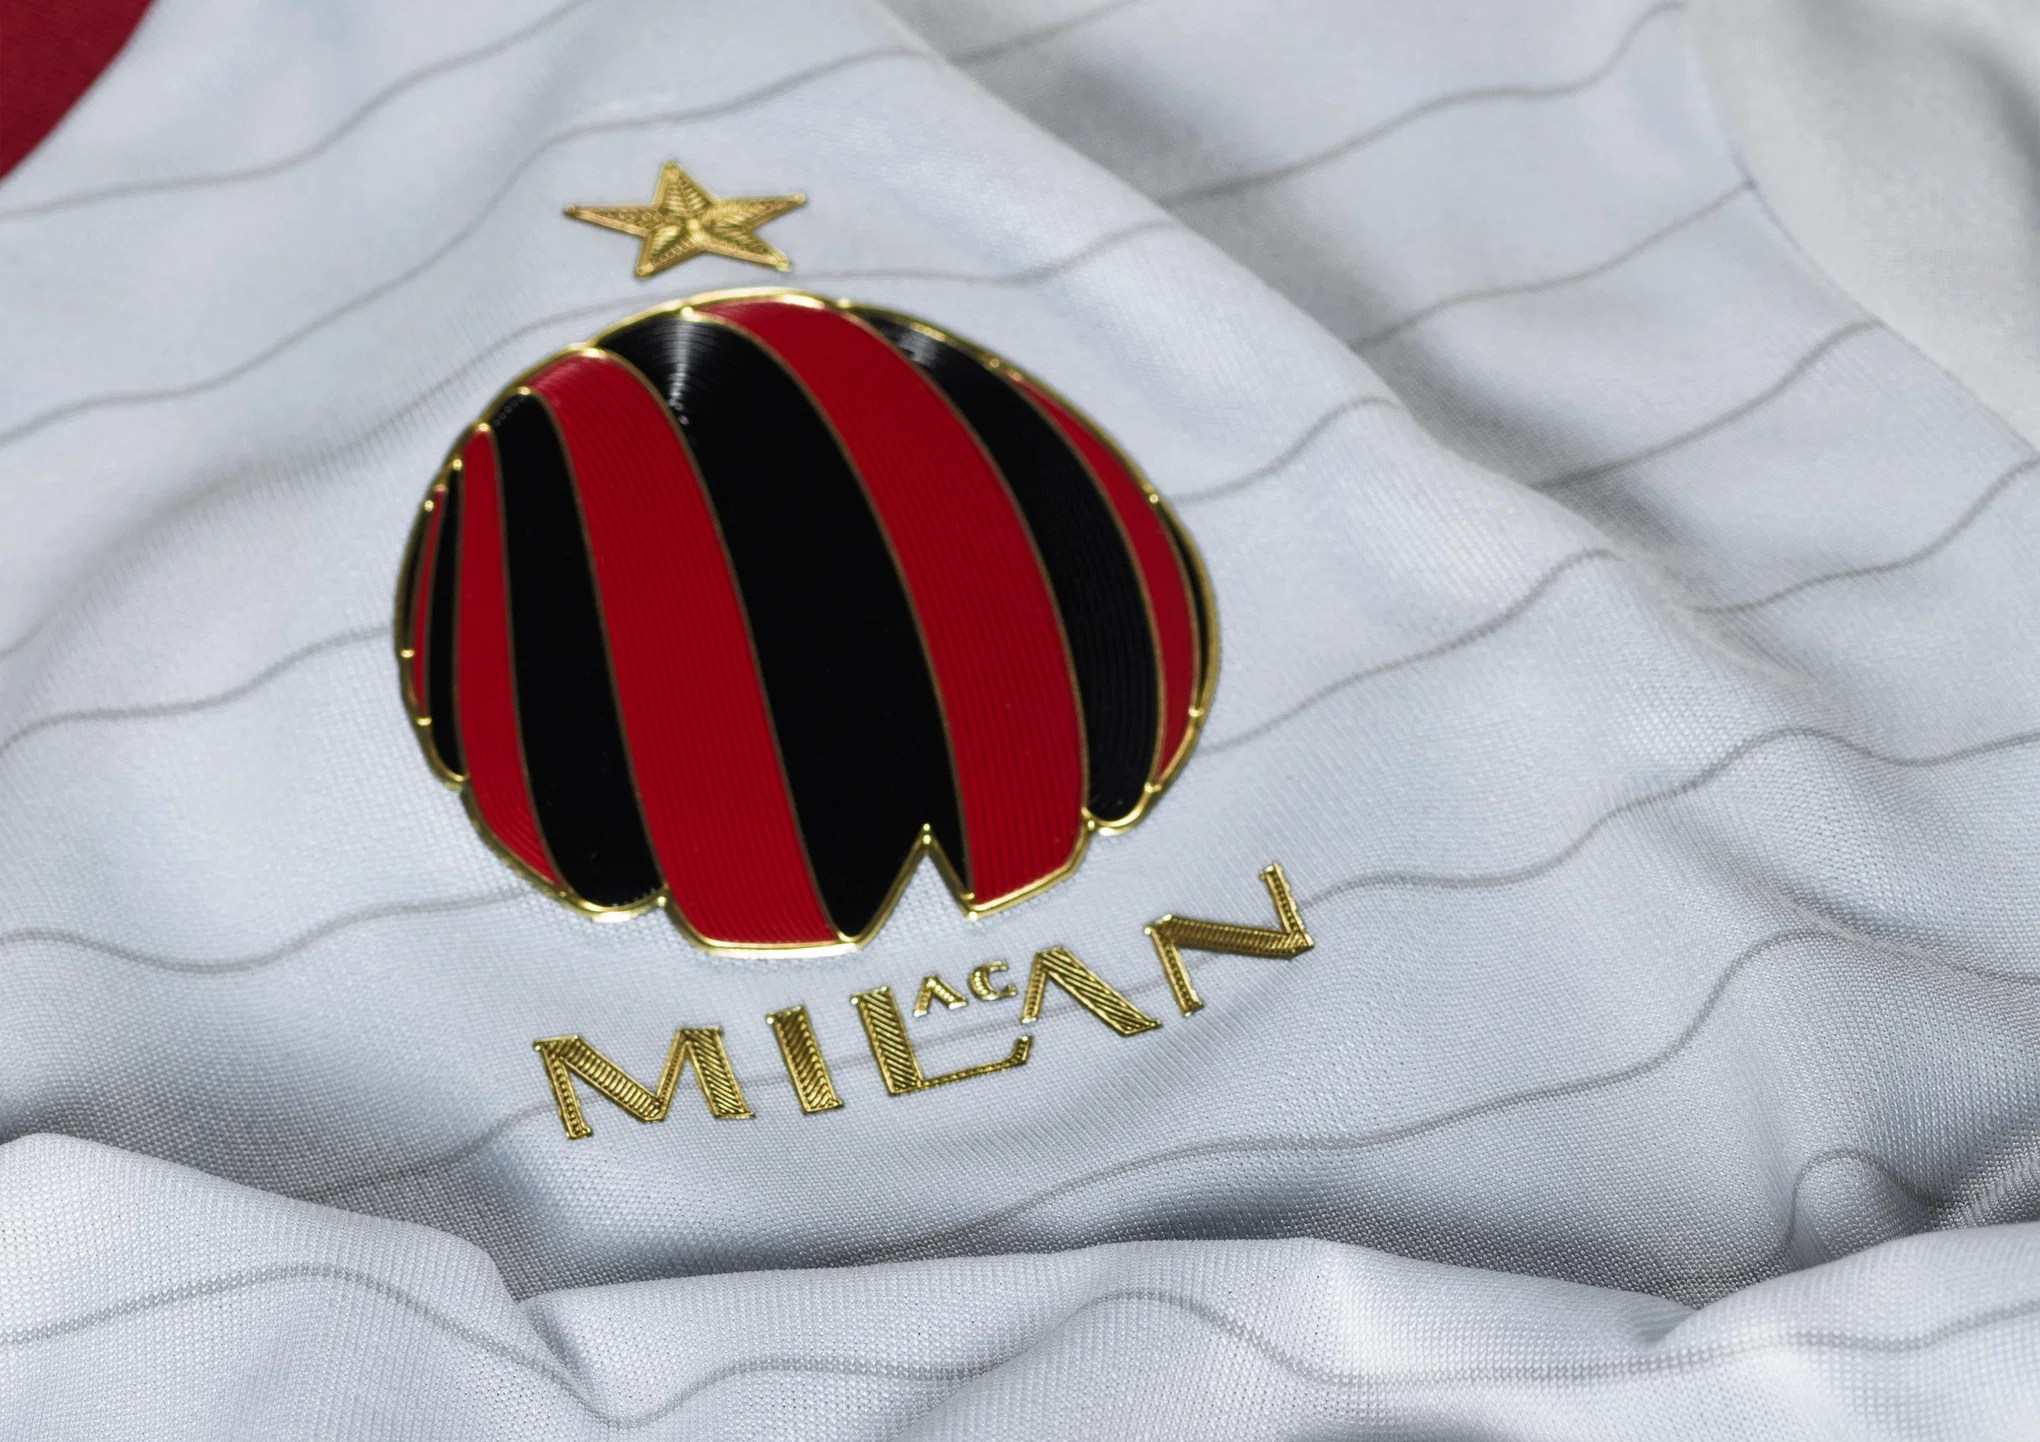 AC Milan reveal their new Away kit for 201415 but with a surprise